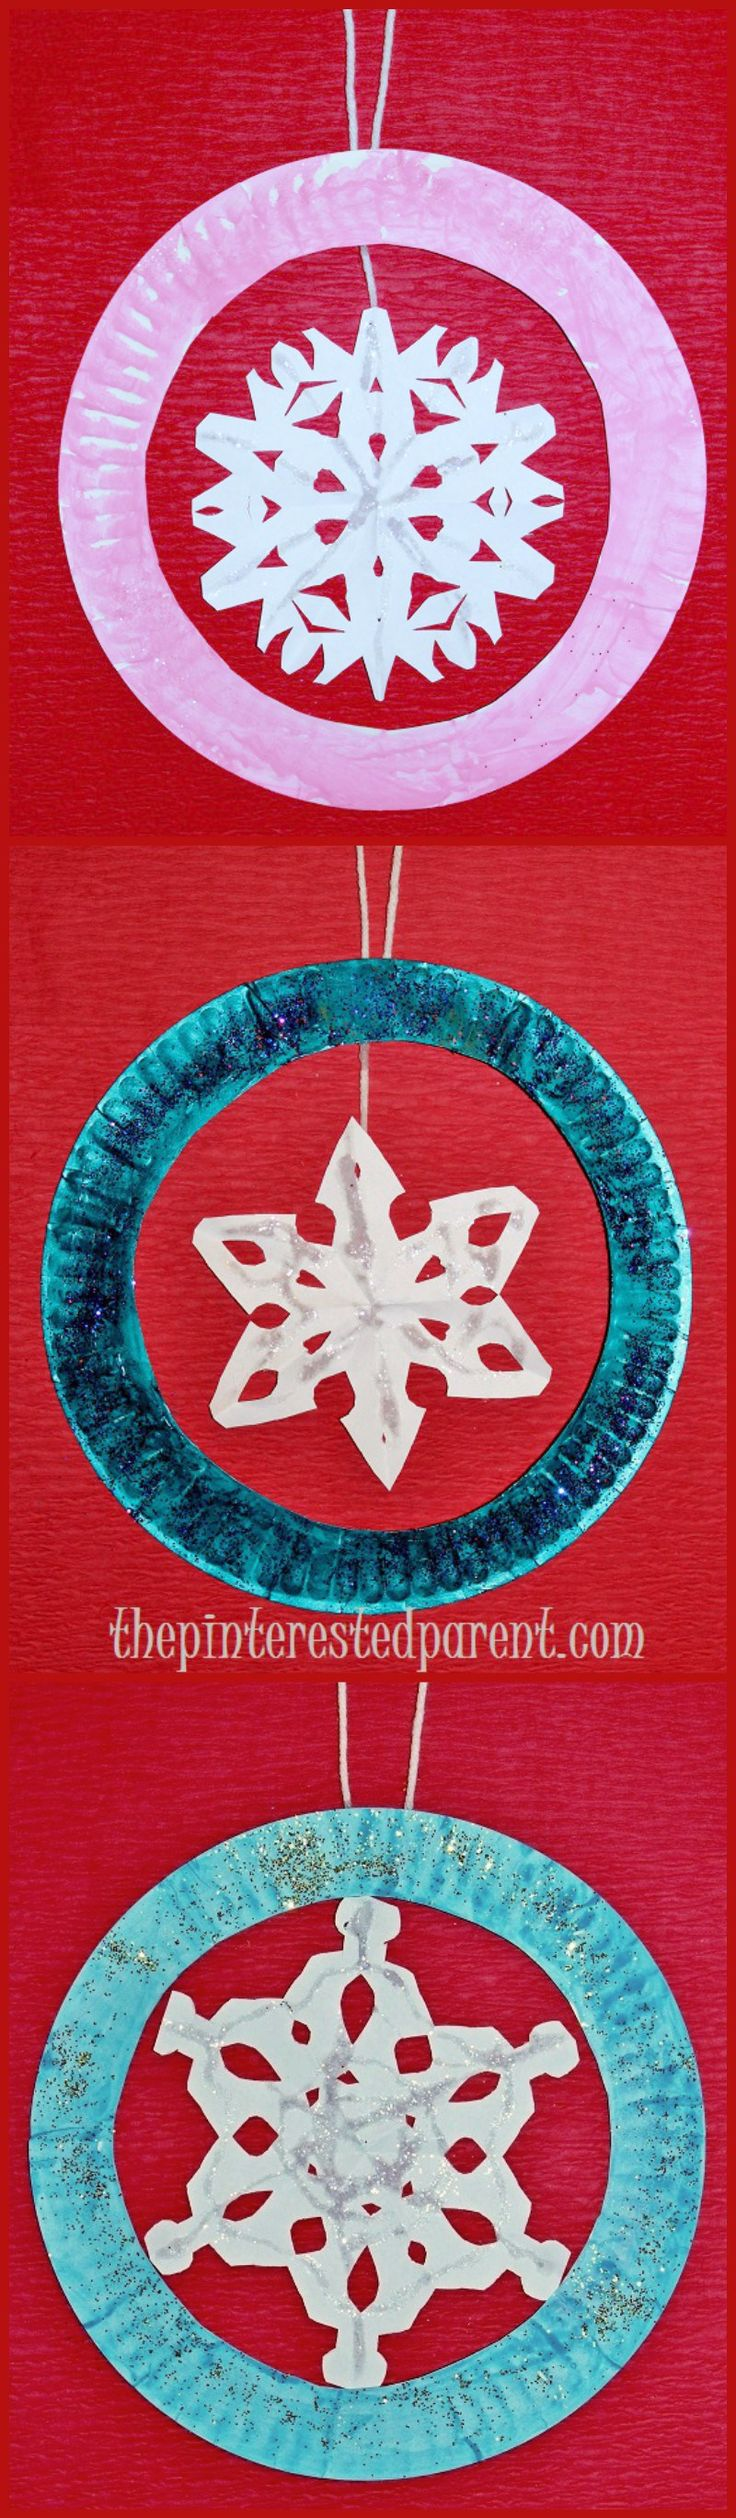 Ceramic snowflake ornaments - Paper Plate Snowflake Ornament Crafts Fun Winter Christmas Crafts For The Kids